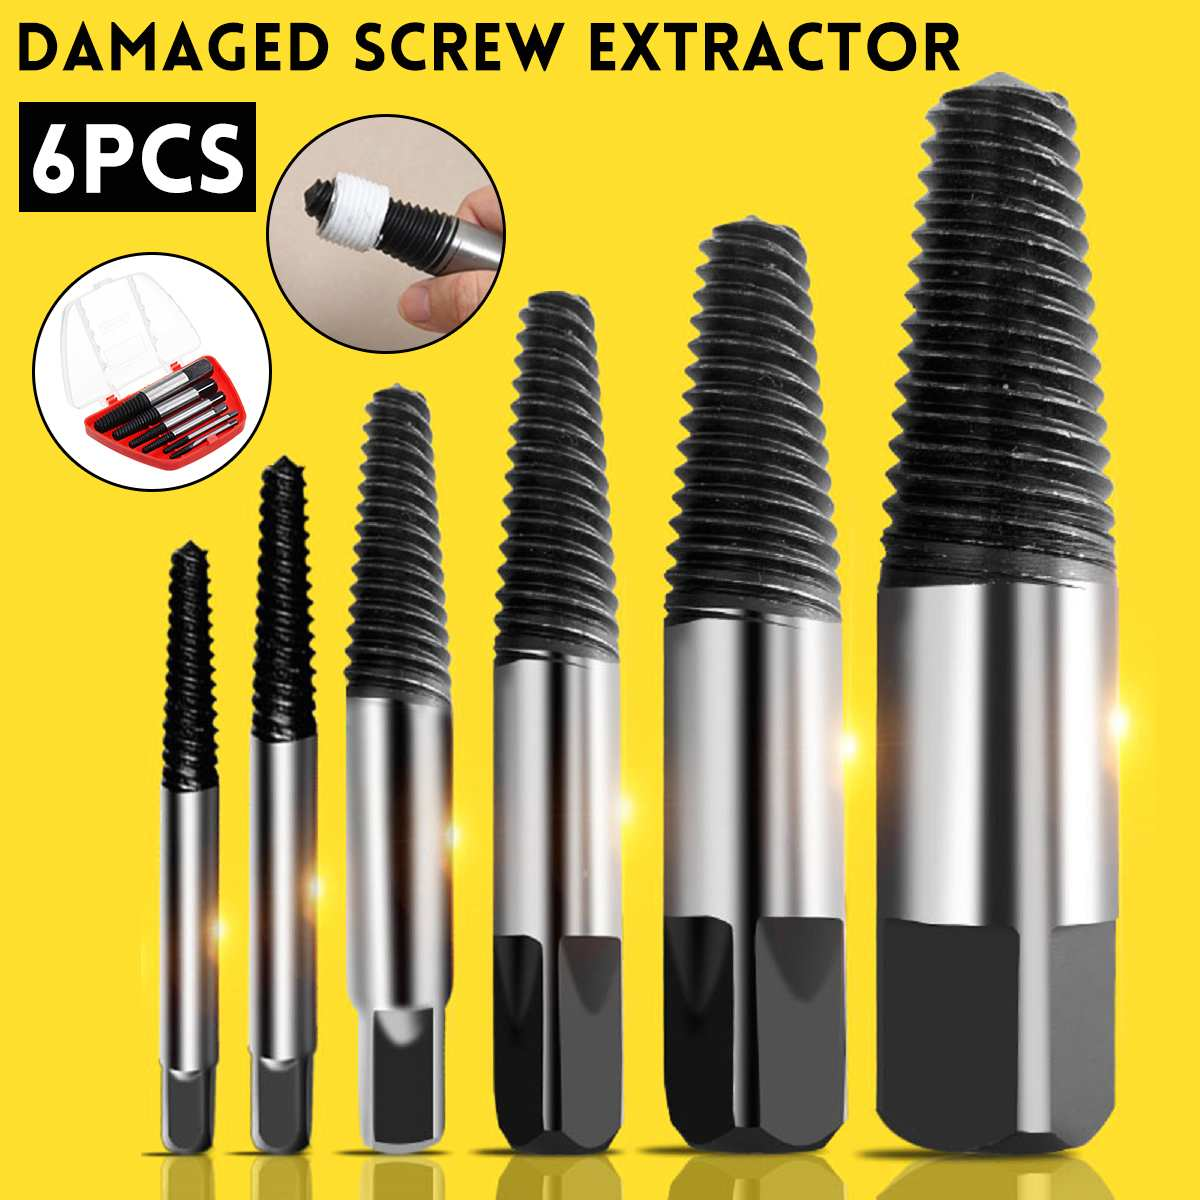 6Pcs/set Steel Damaged Screw Extractor Drill Bit Broken Speed Out Guide Set Broken Bolt Remover Easy Out  Tool Accessories